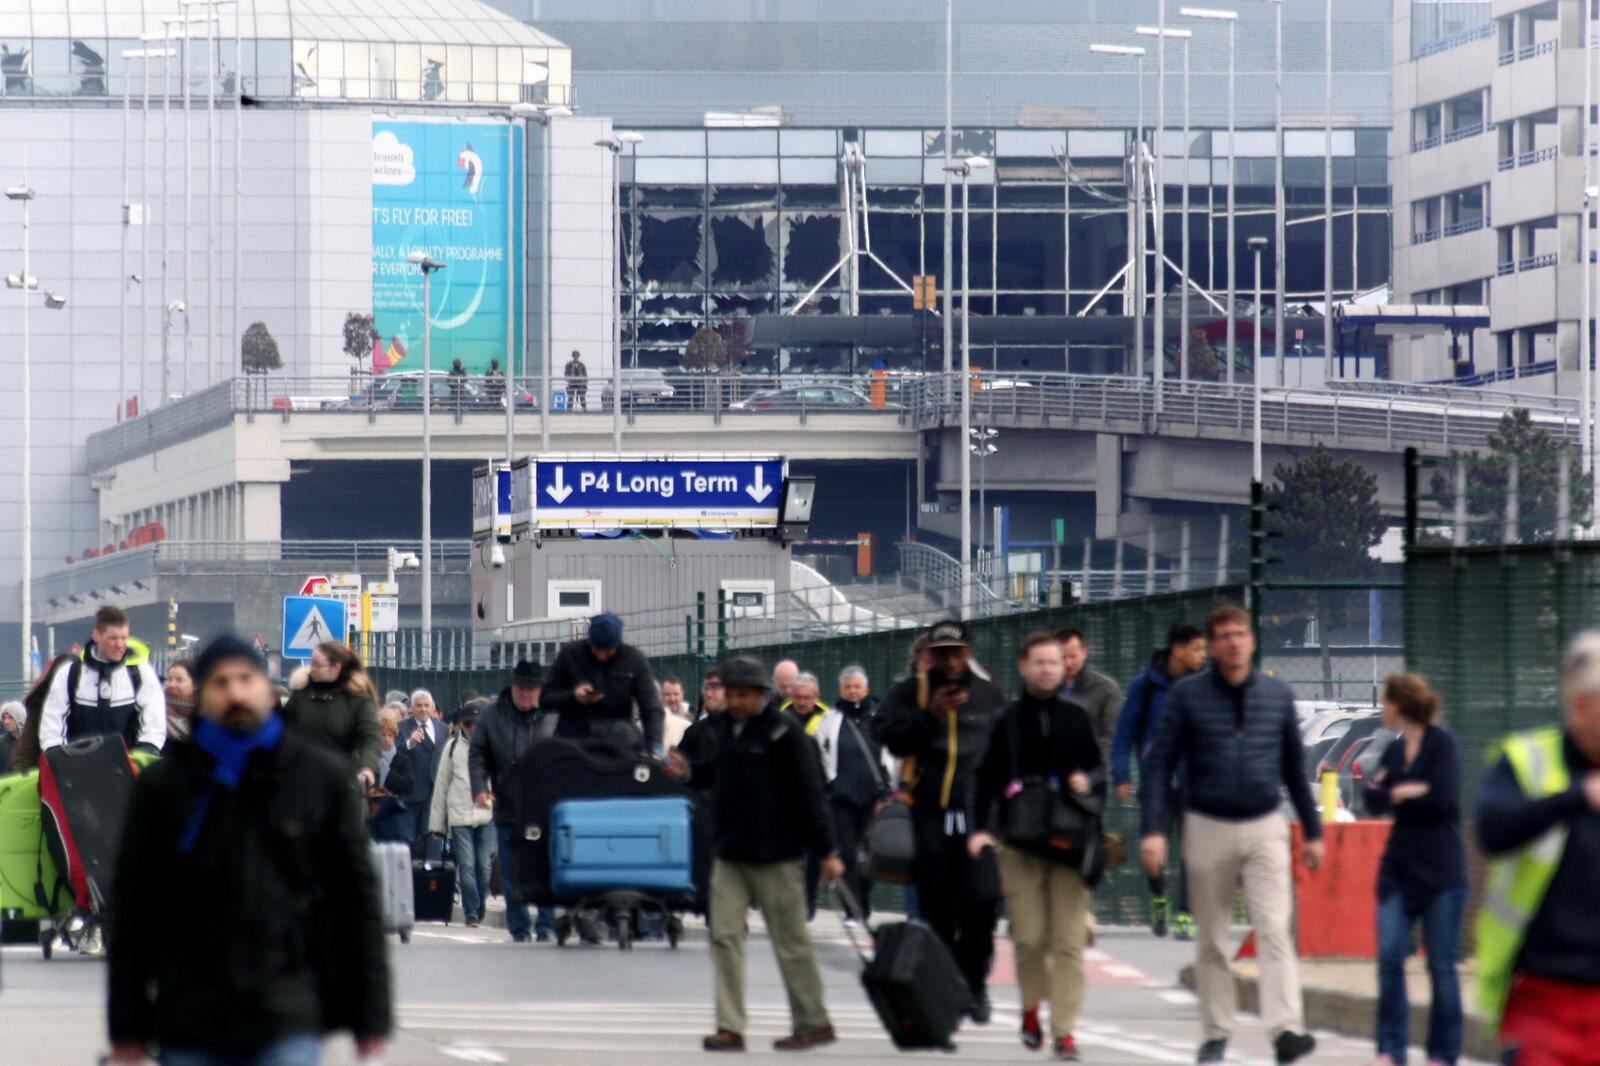 People are evacuated from the Zaventem international airport after a terrorist bombing earlier today in Brussels.